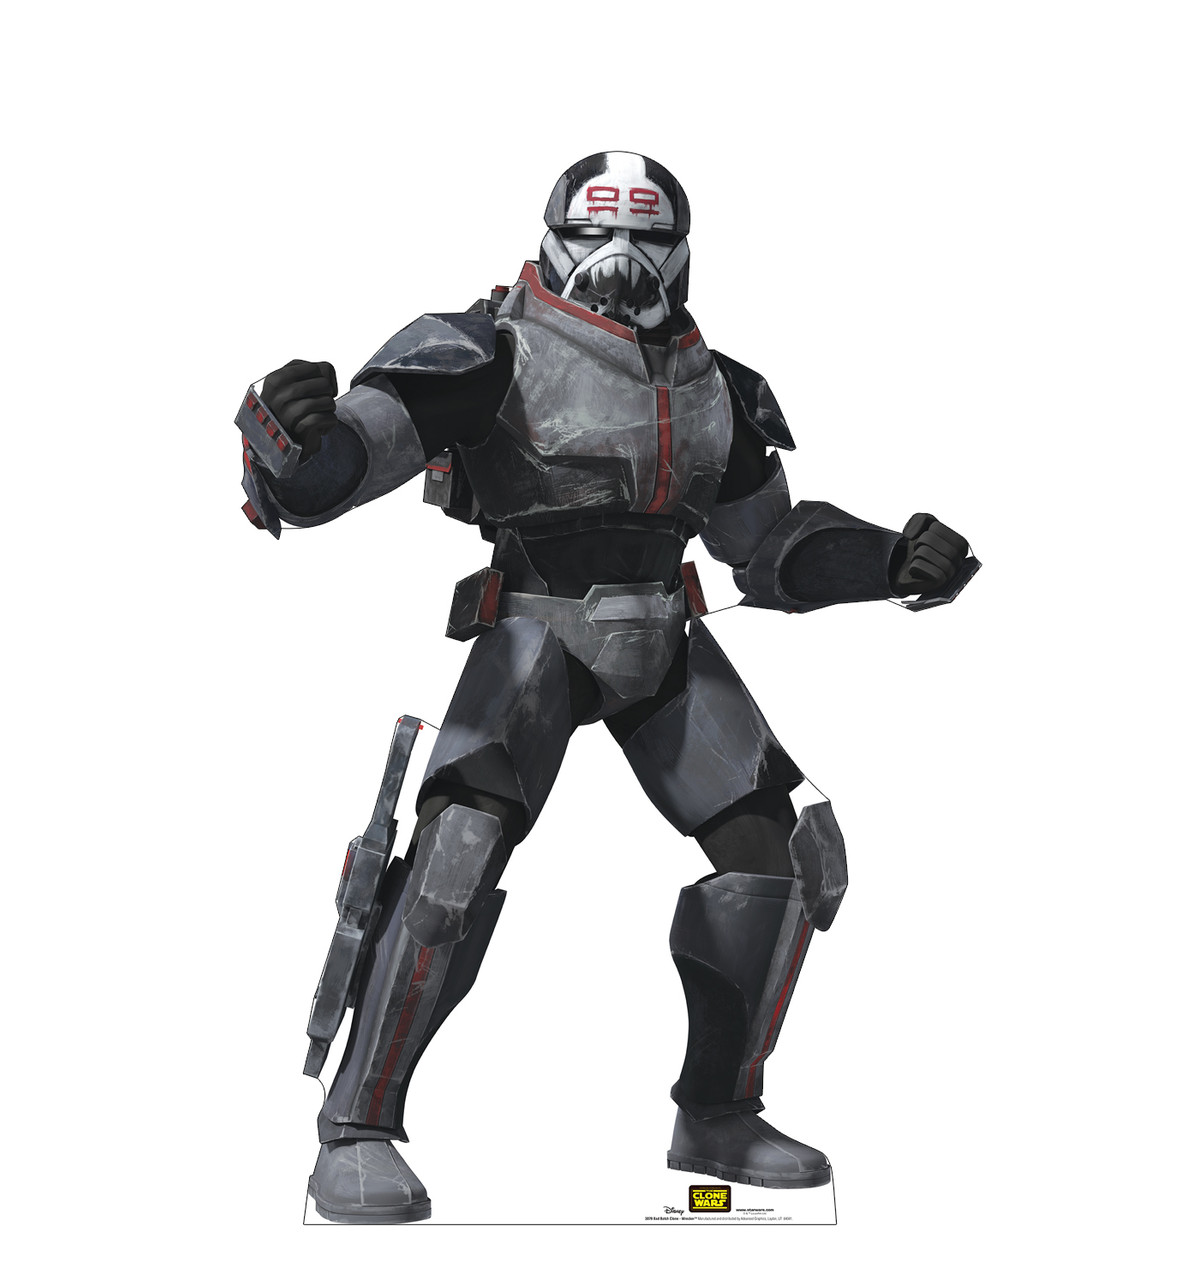 Life-size cardboard standee of the character Bad Batch Clone Wrecker from Clone Wars Season 7.